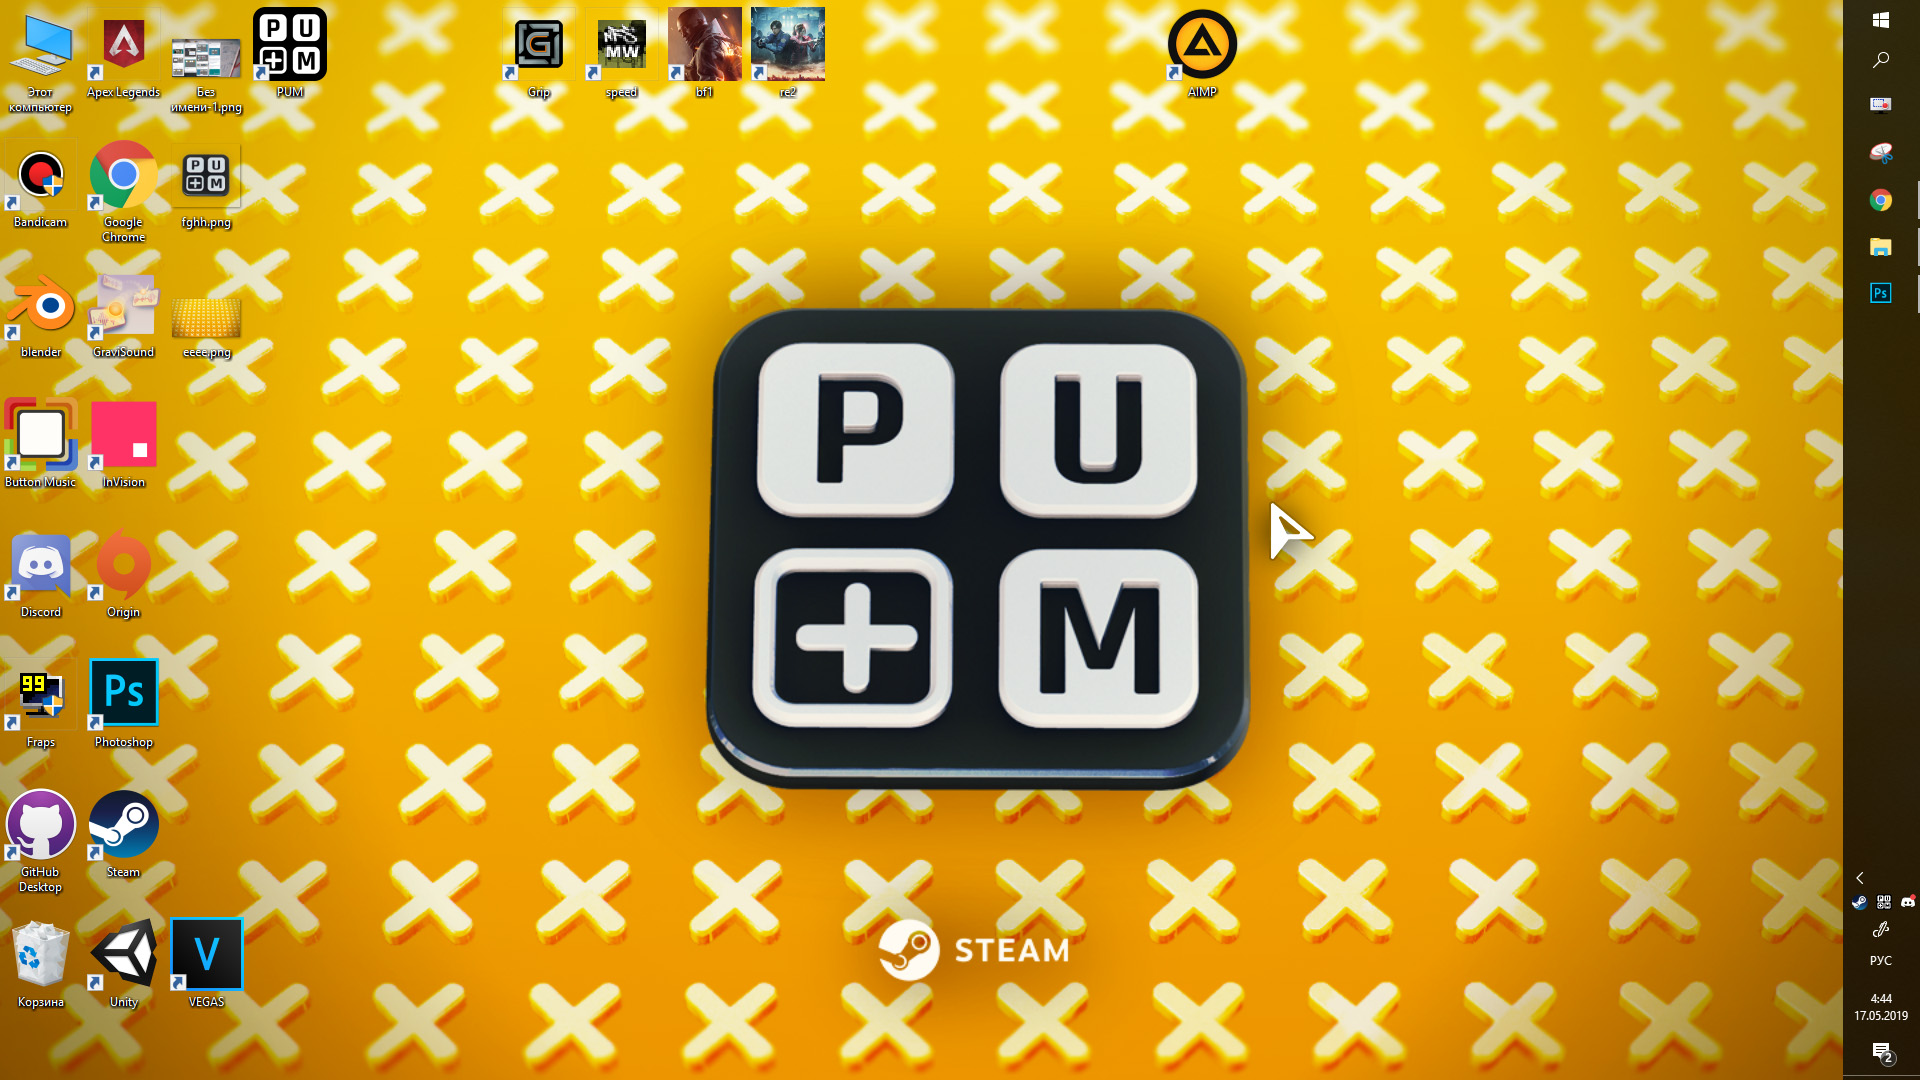 PUM on Steam